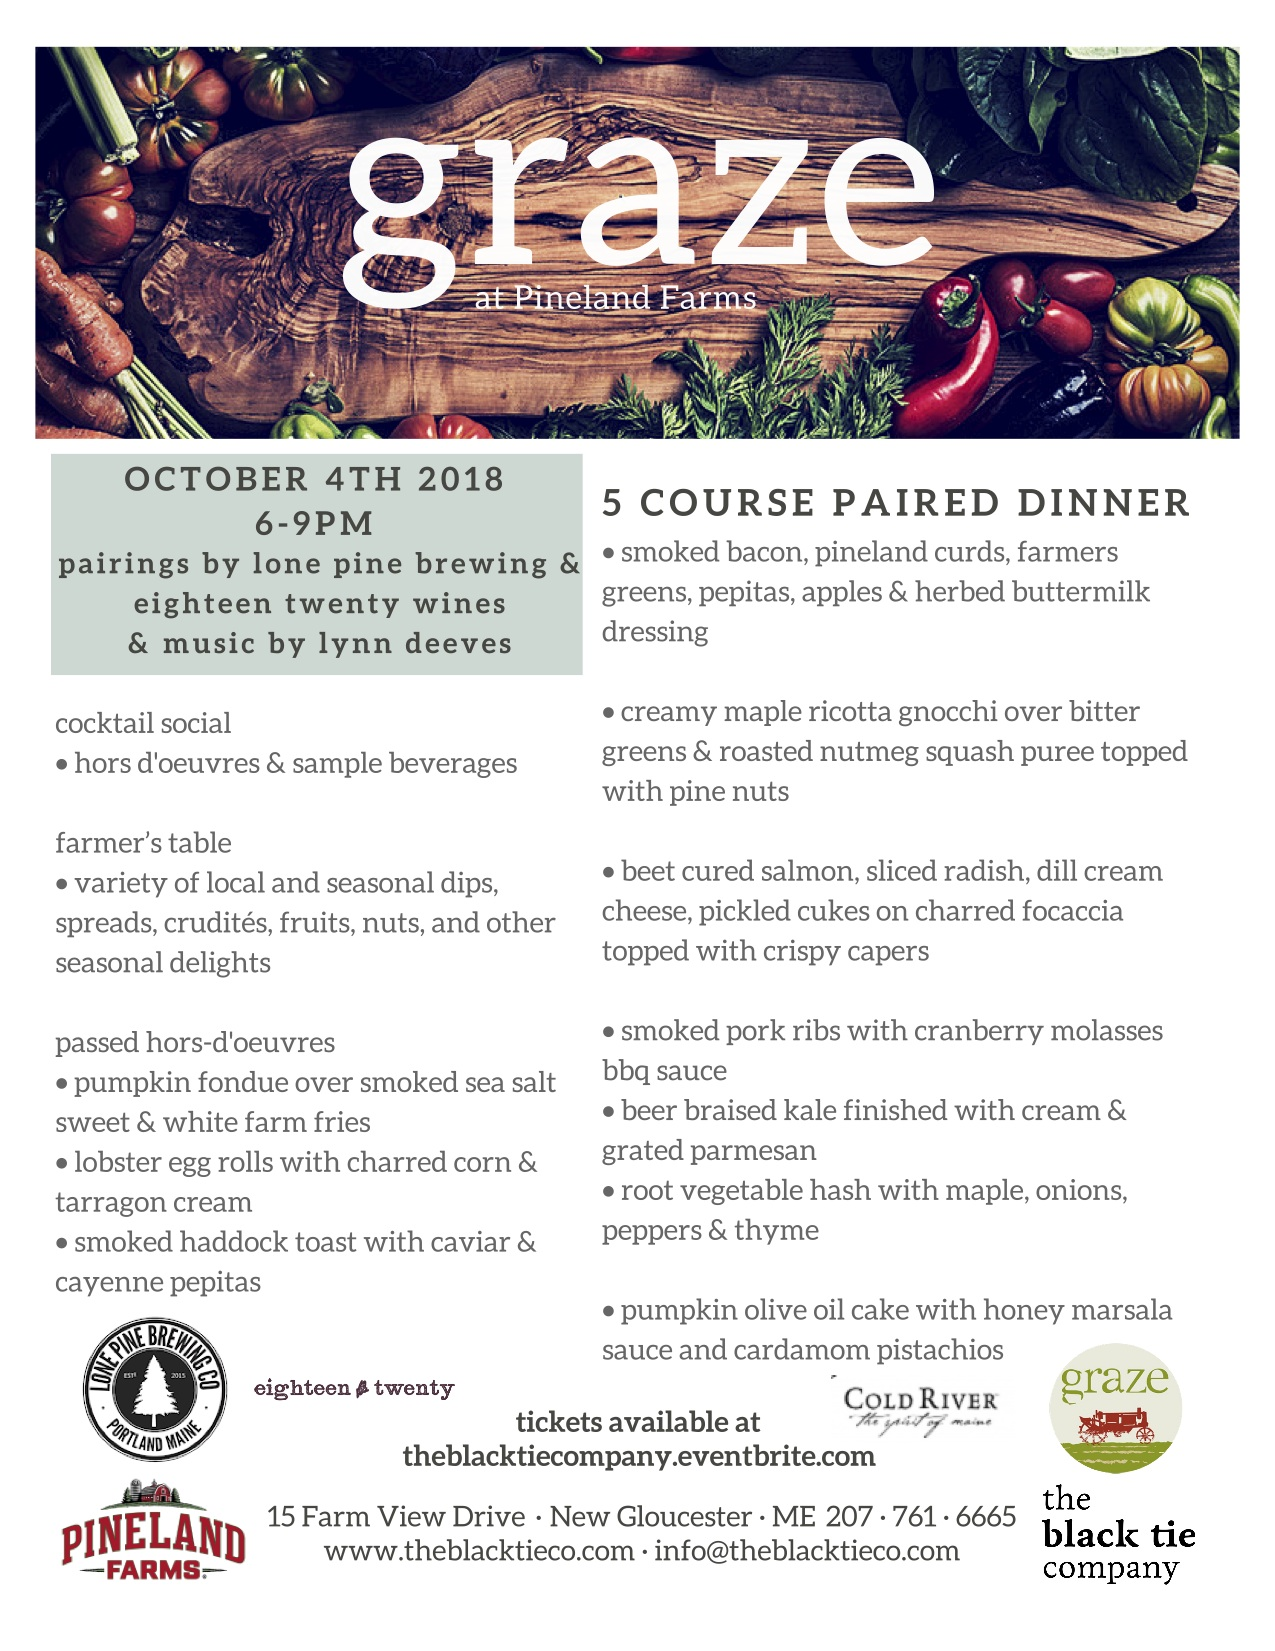 october graze menu